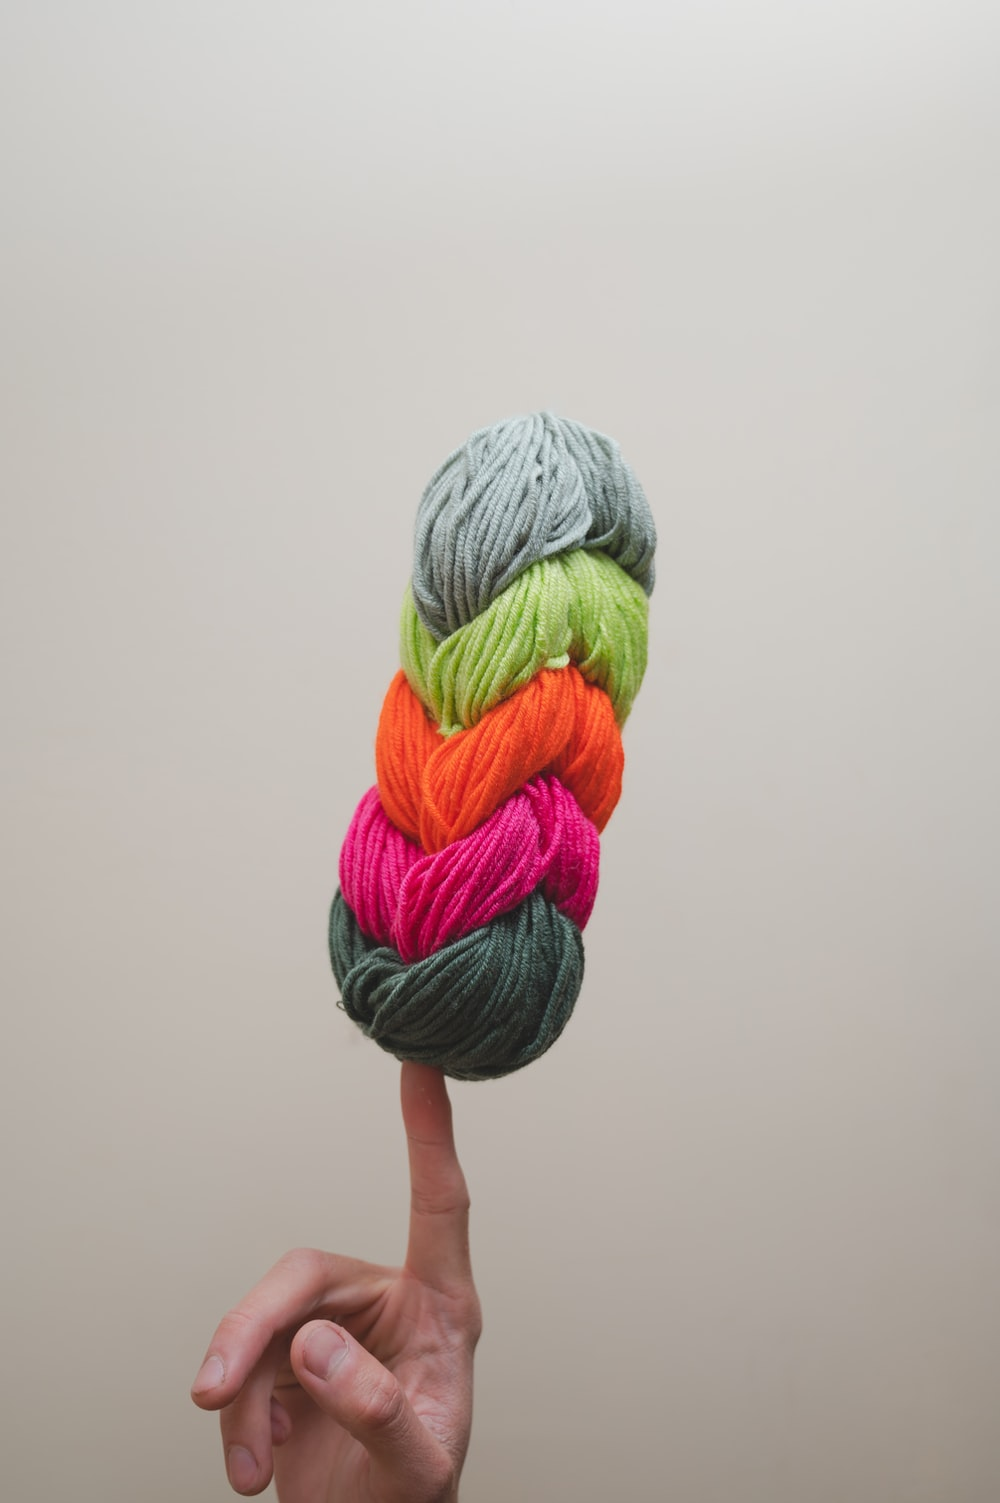 person holding green and purple yarn